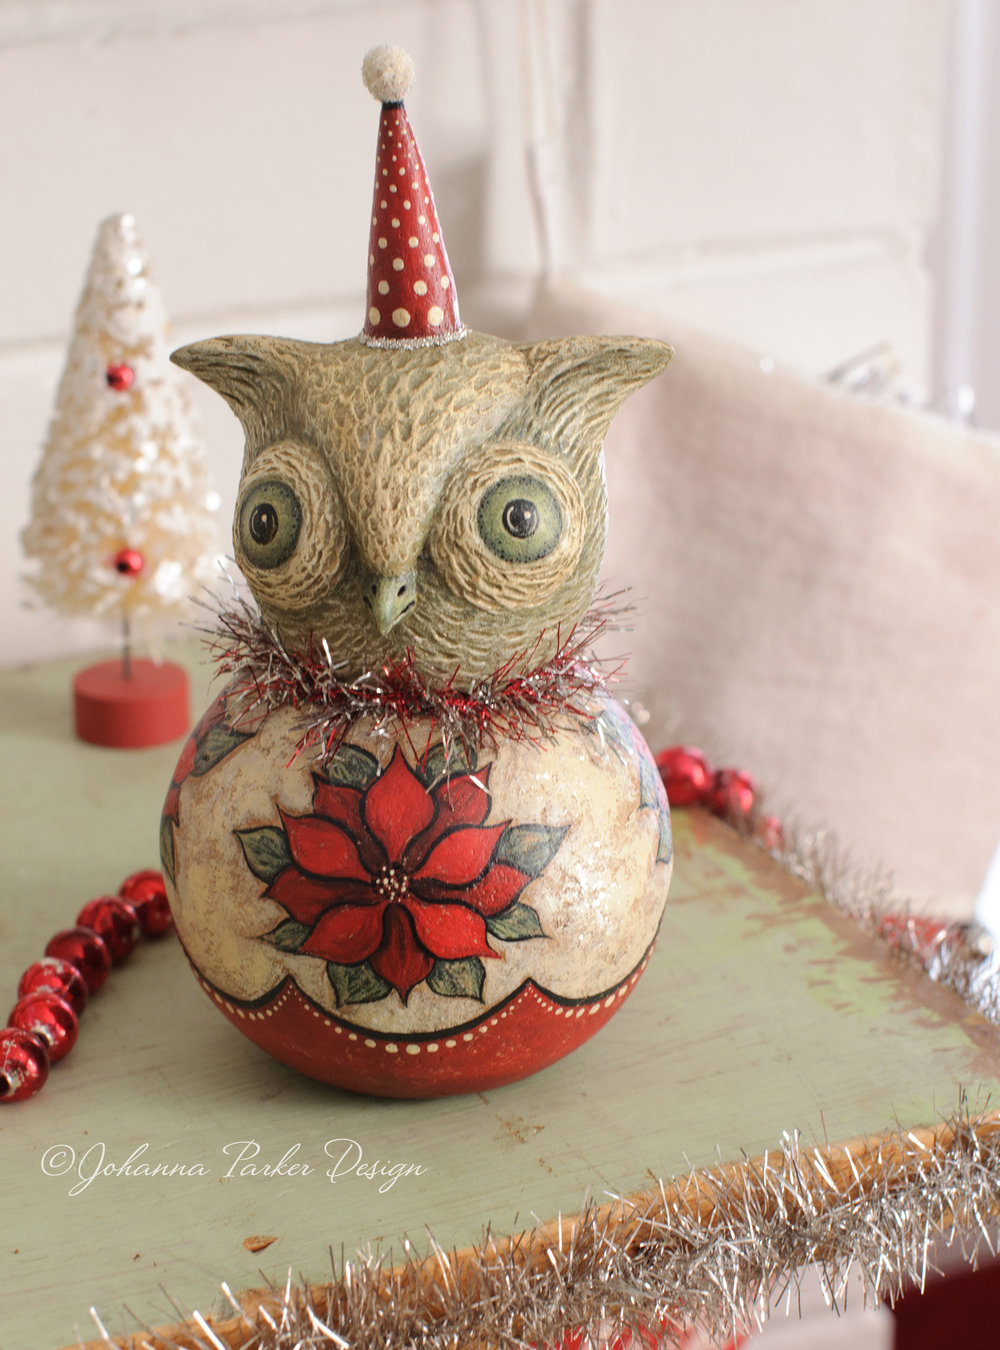 Poinsettia winter owl